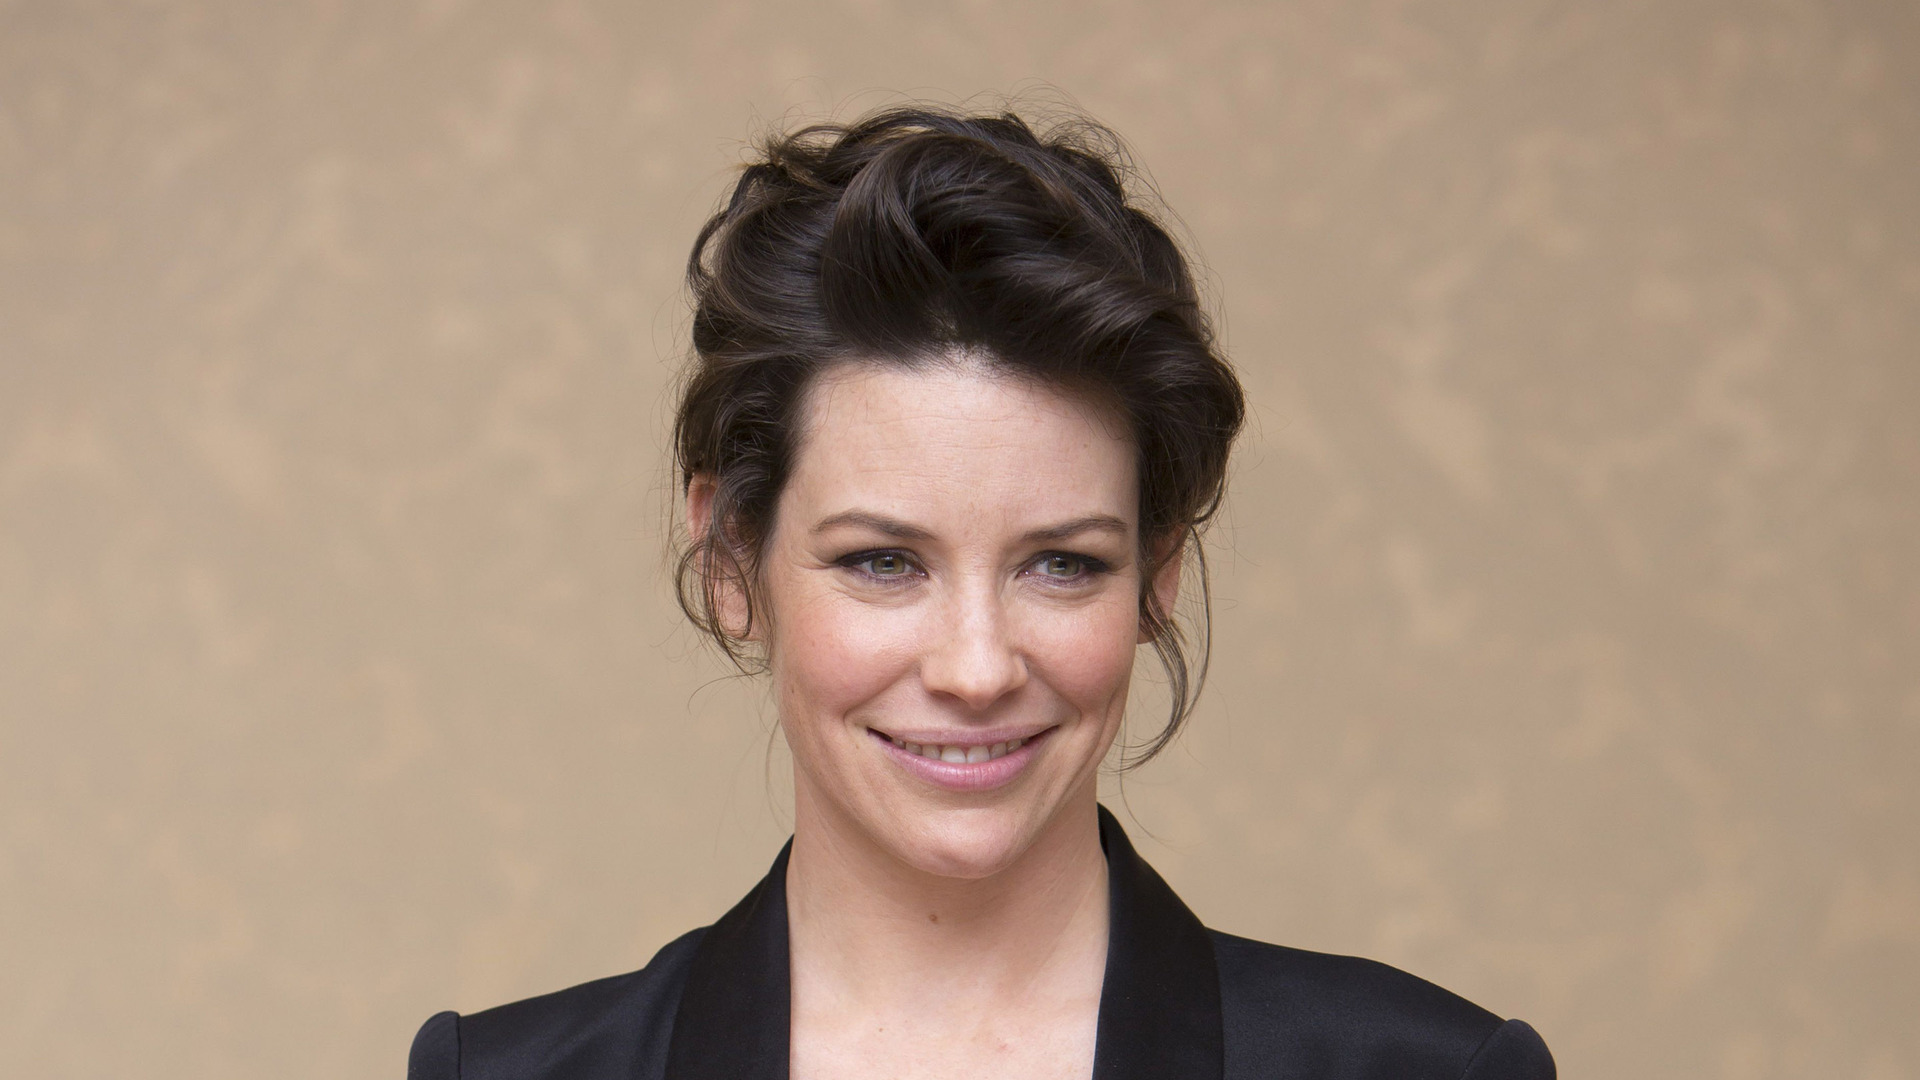 Evangeline Lilly The Hobbit wallpaper 7432 1920x1080